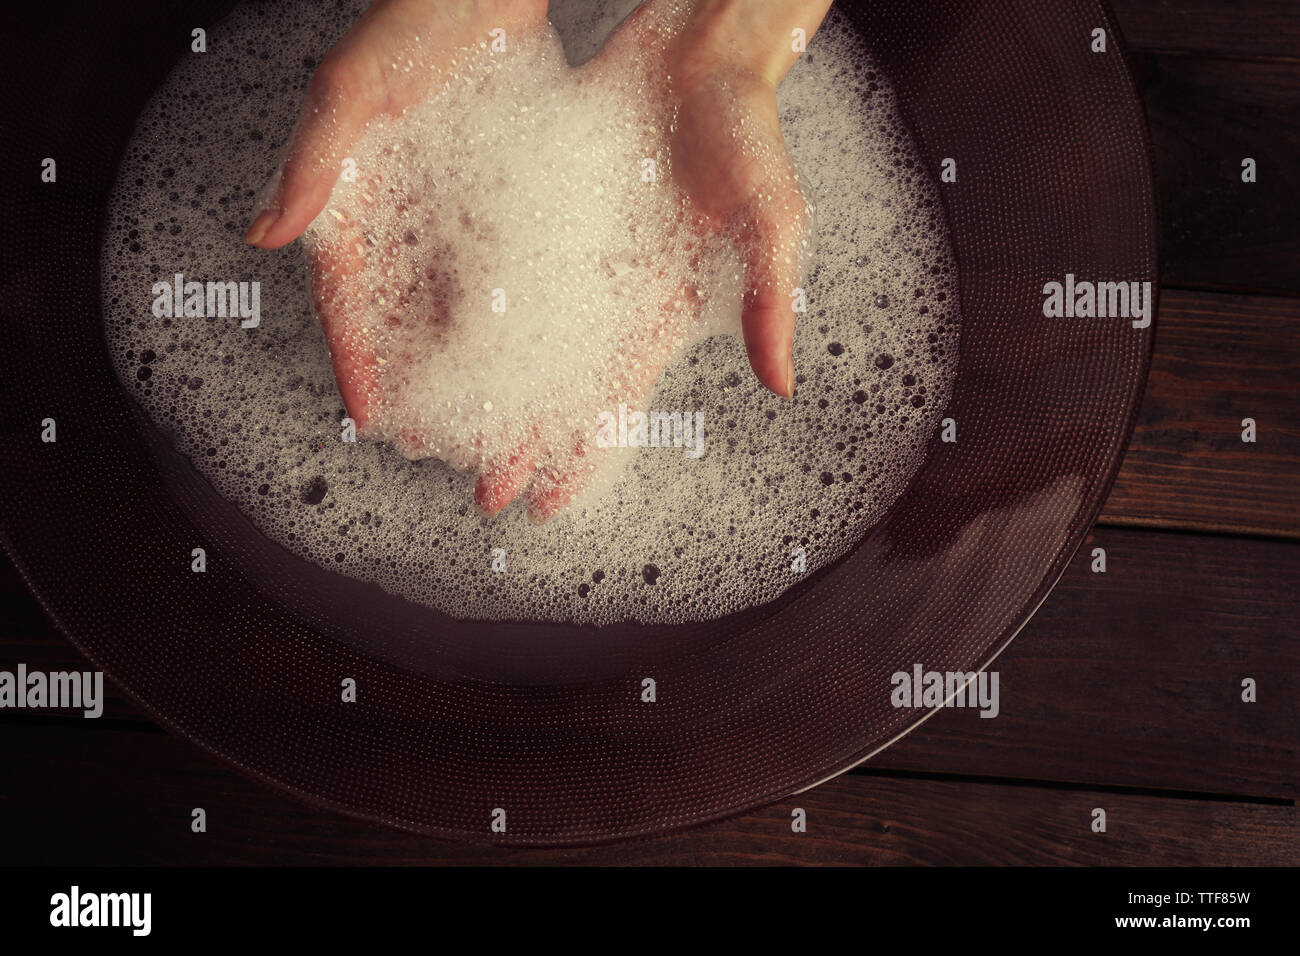 Woman washing hands in bowl on wooden background - Stock Image